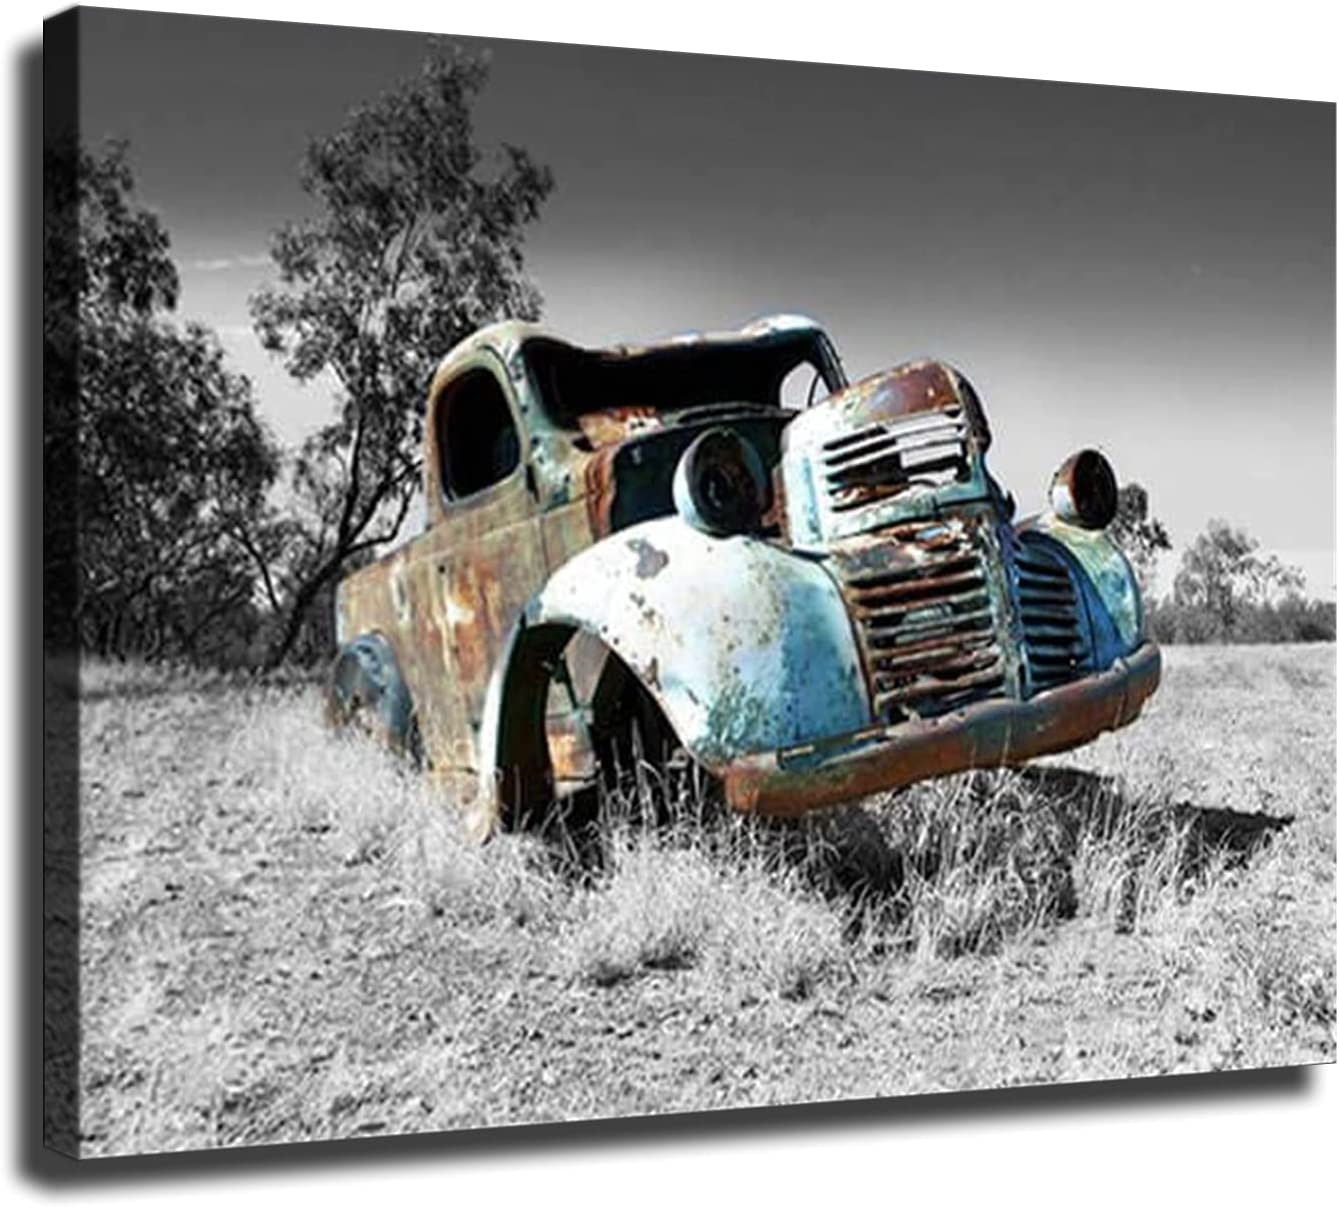 Home Sale SALE% OFF Decor Print Oil Painting on Pictures Truck Art Wall 5% OFF Canvas